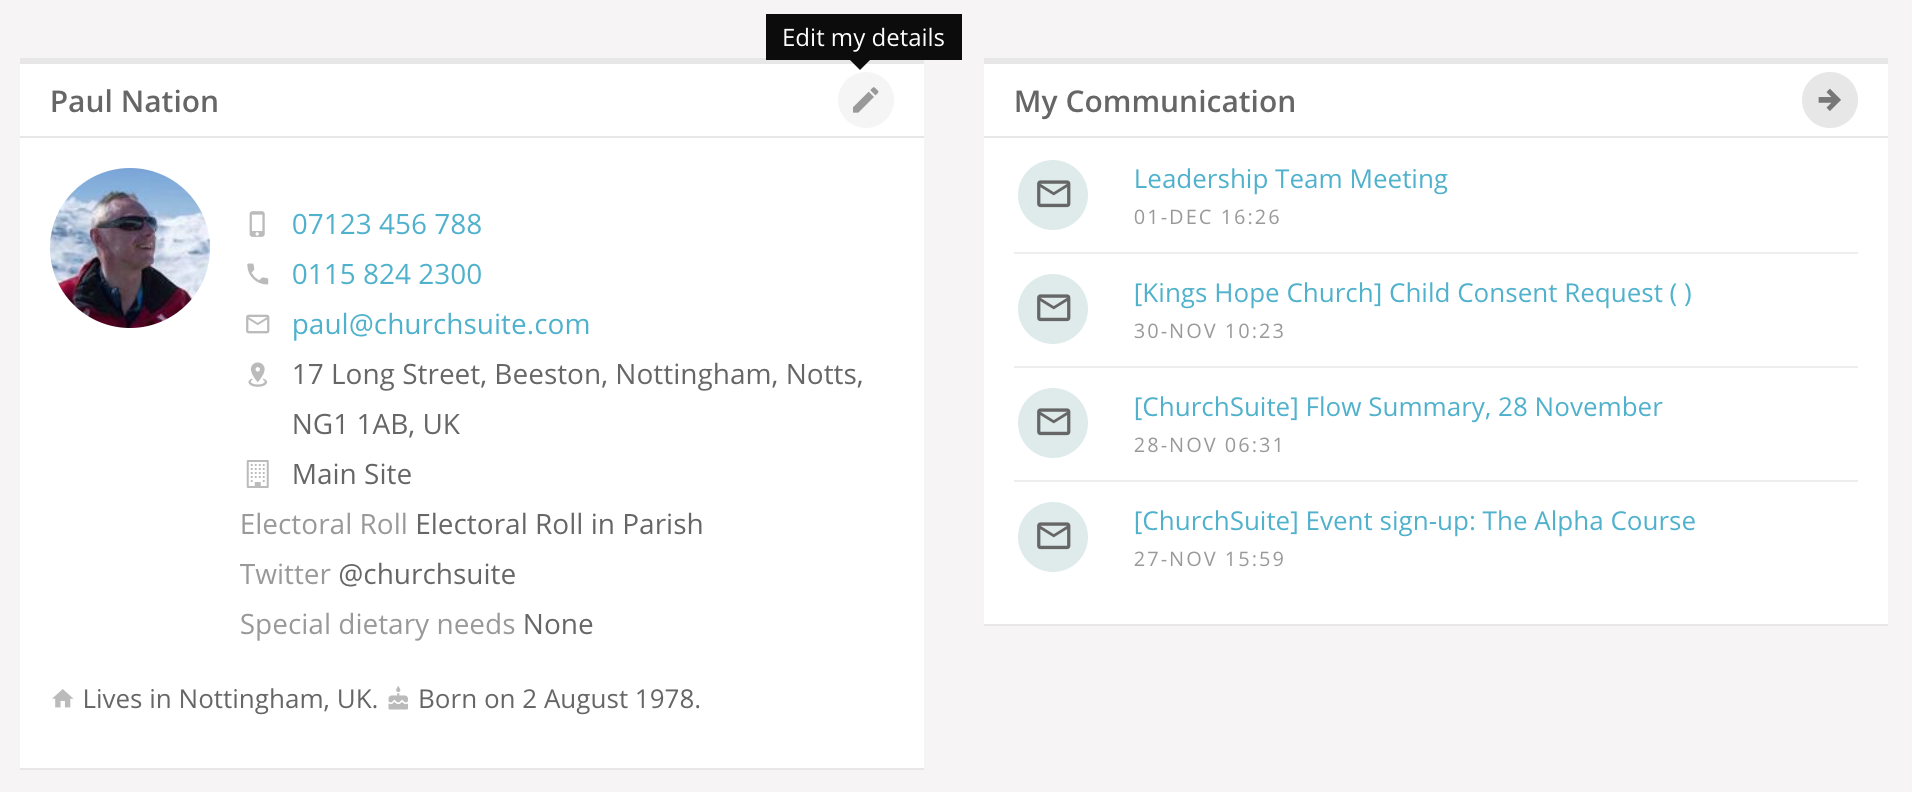 2  My ChurchSuite user guide - ChurchSuite Support Articles